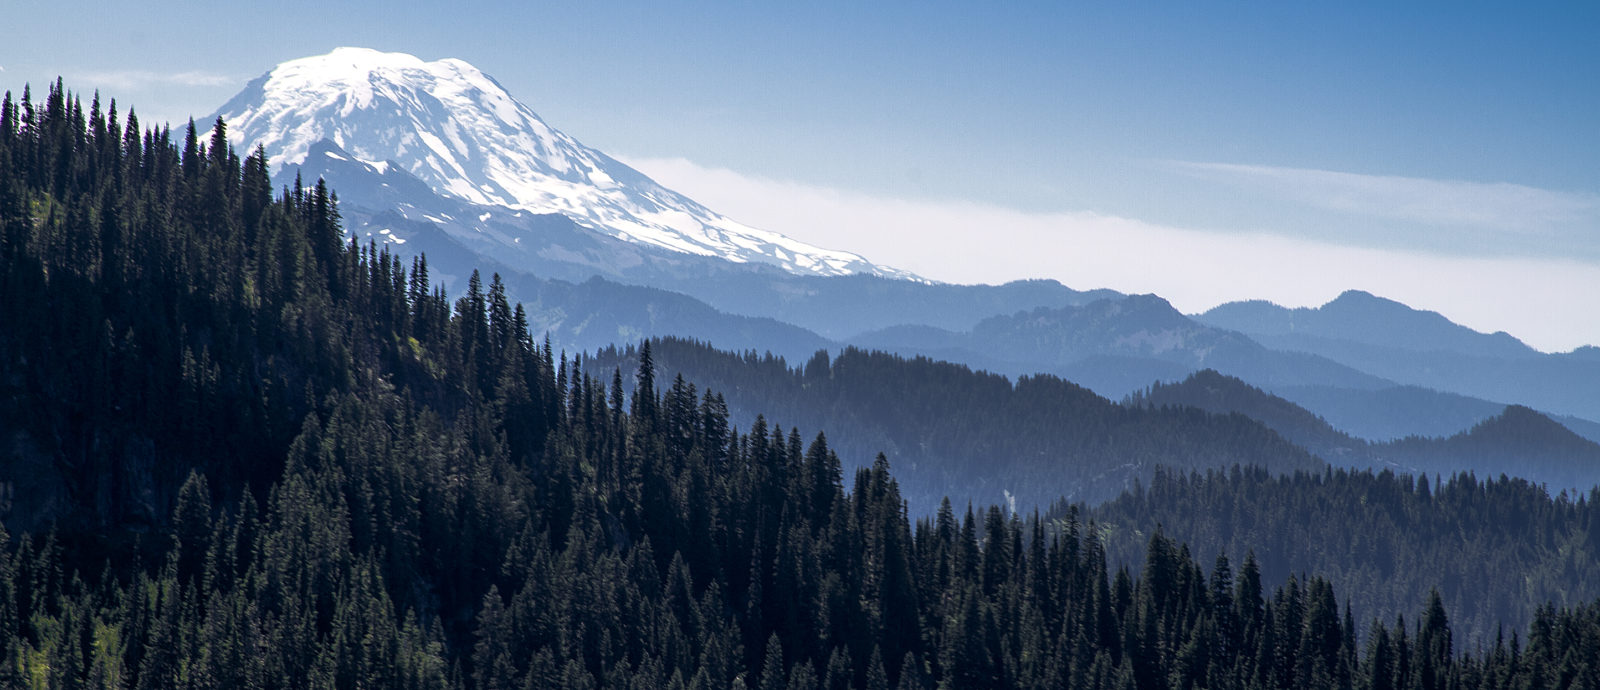 Mount rainier NP 5787